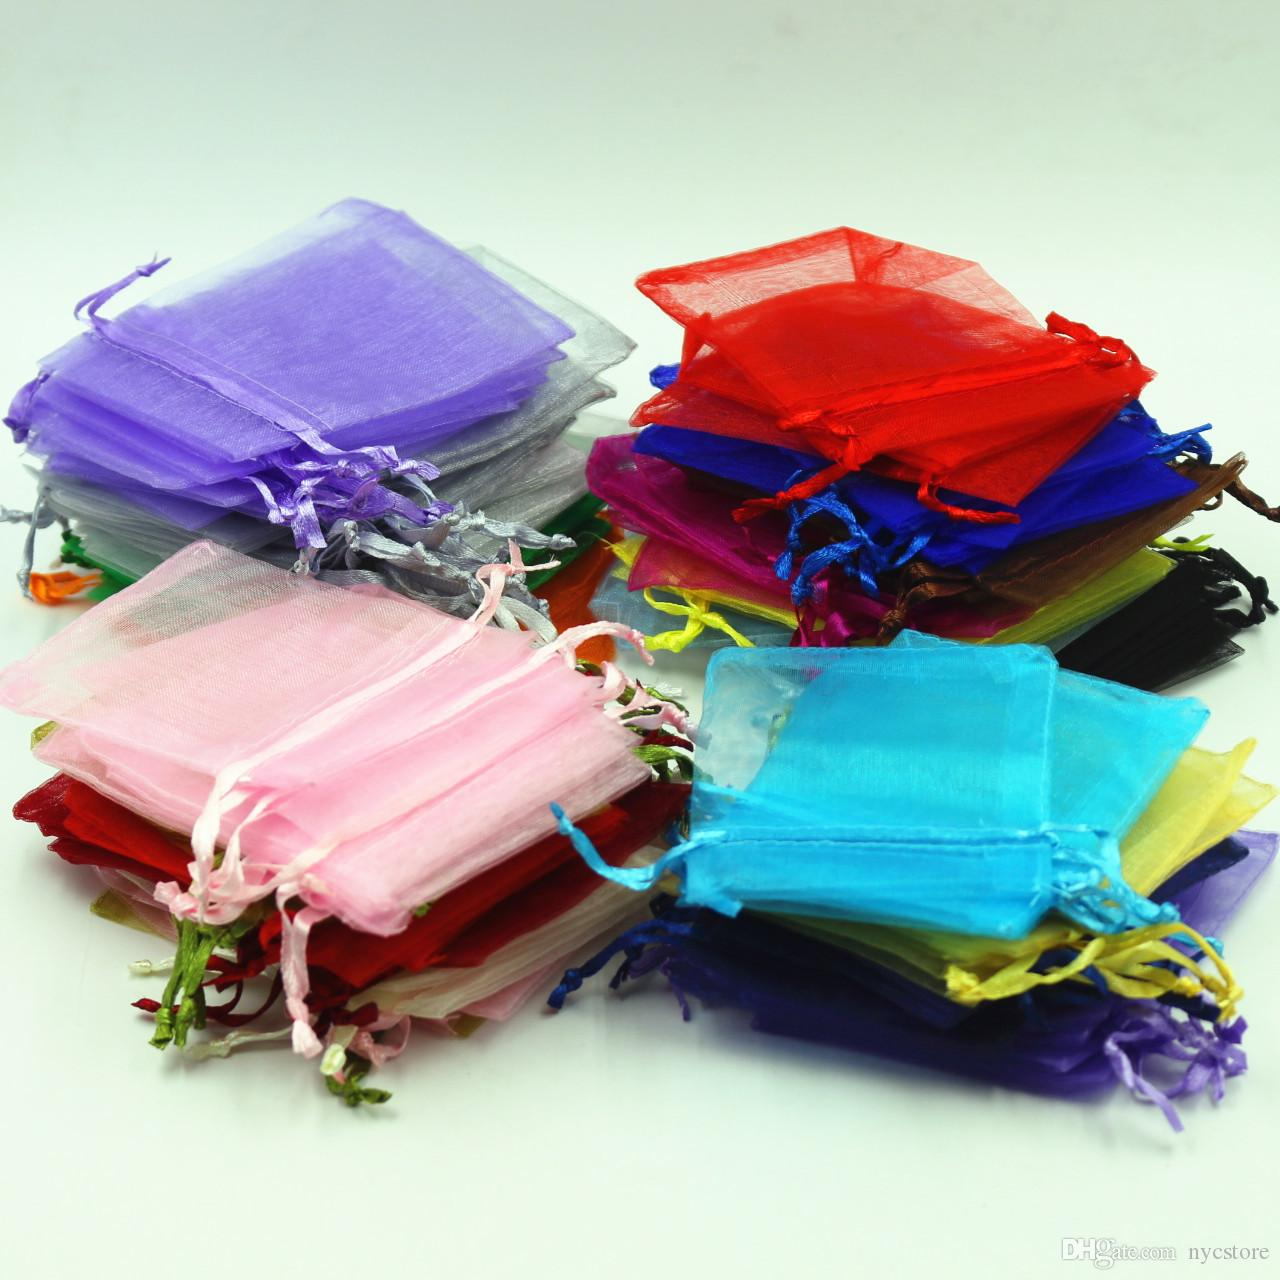 Wholesale Jewelry Bags MIXED Organza Jewelry Wedding Party Xmas Gift Bags Purple Blue Pink Yellow Black With Drawstring 7*9cm